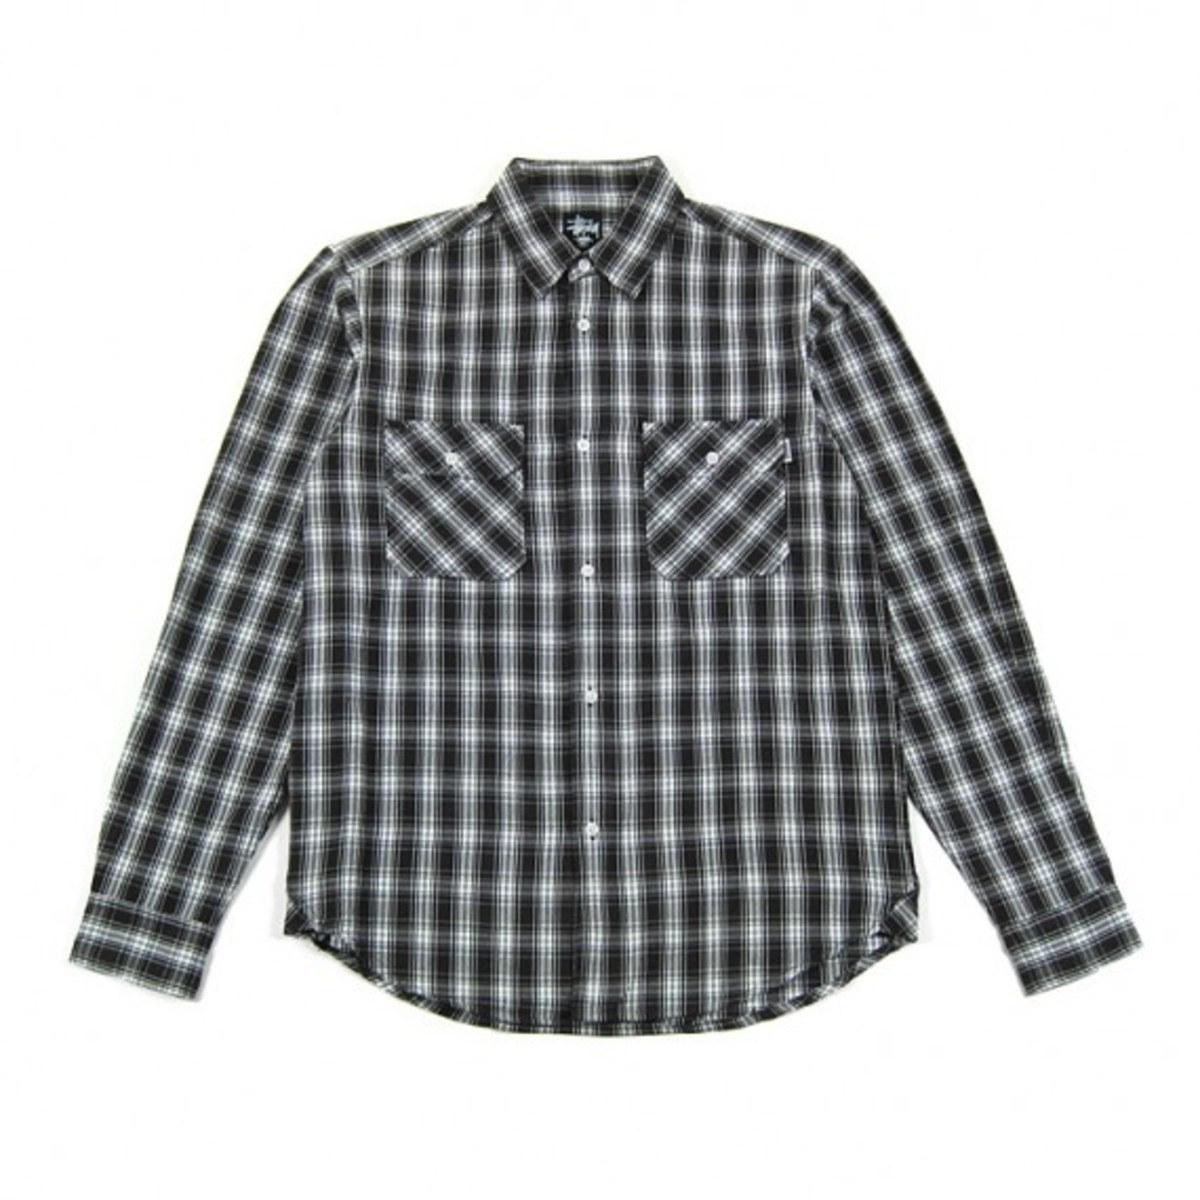 stussy-fall-2009-flannel-shirts-4